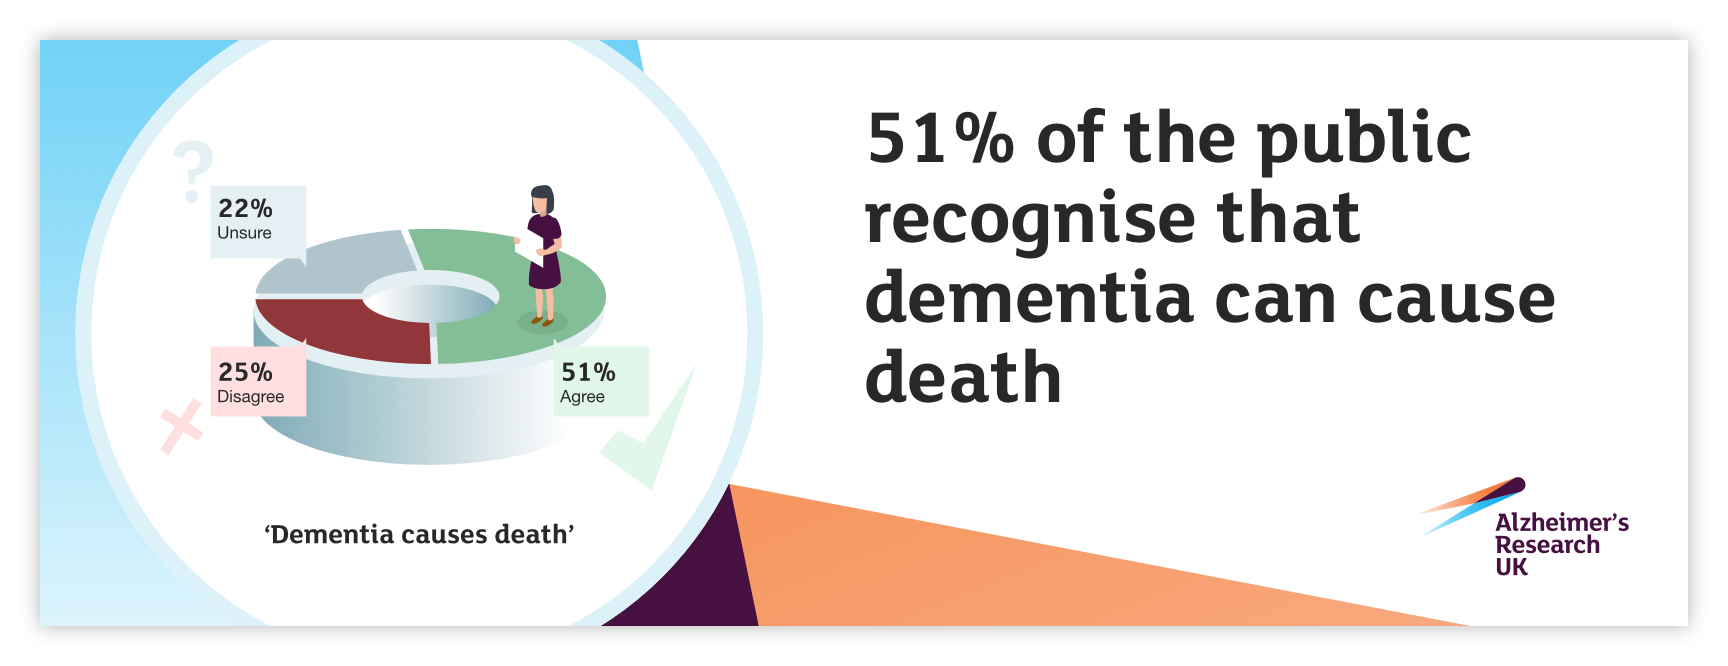 51% of the public recognise that dementia can cause death